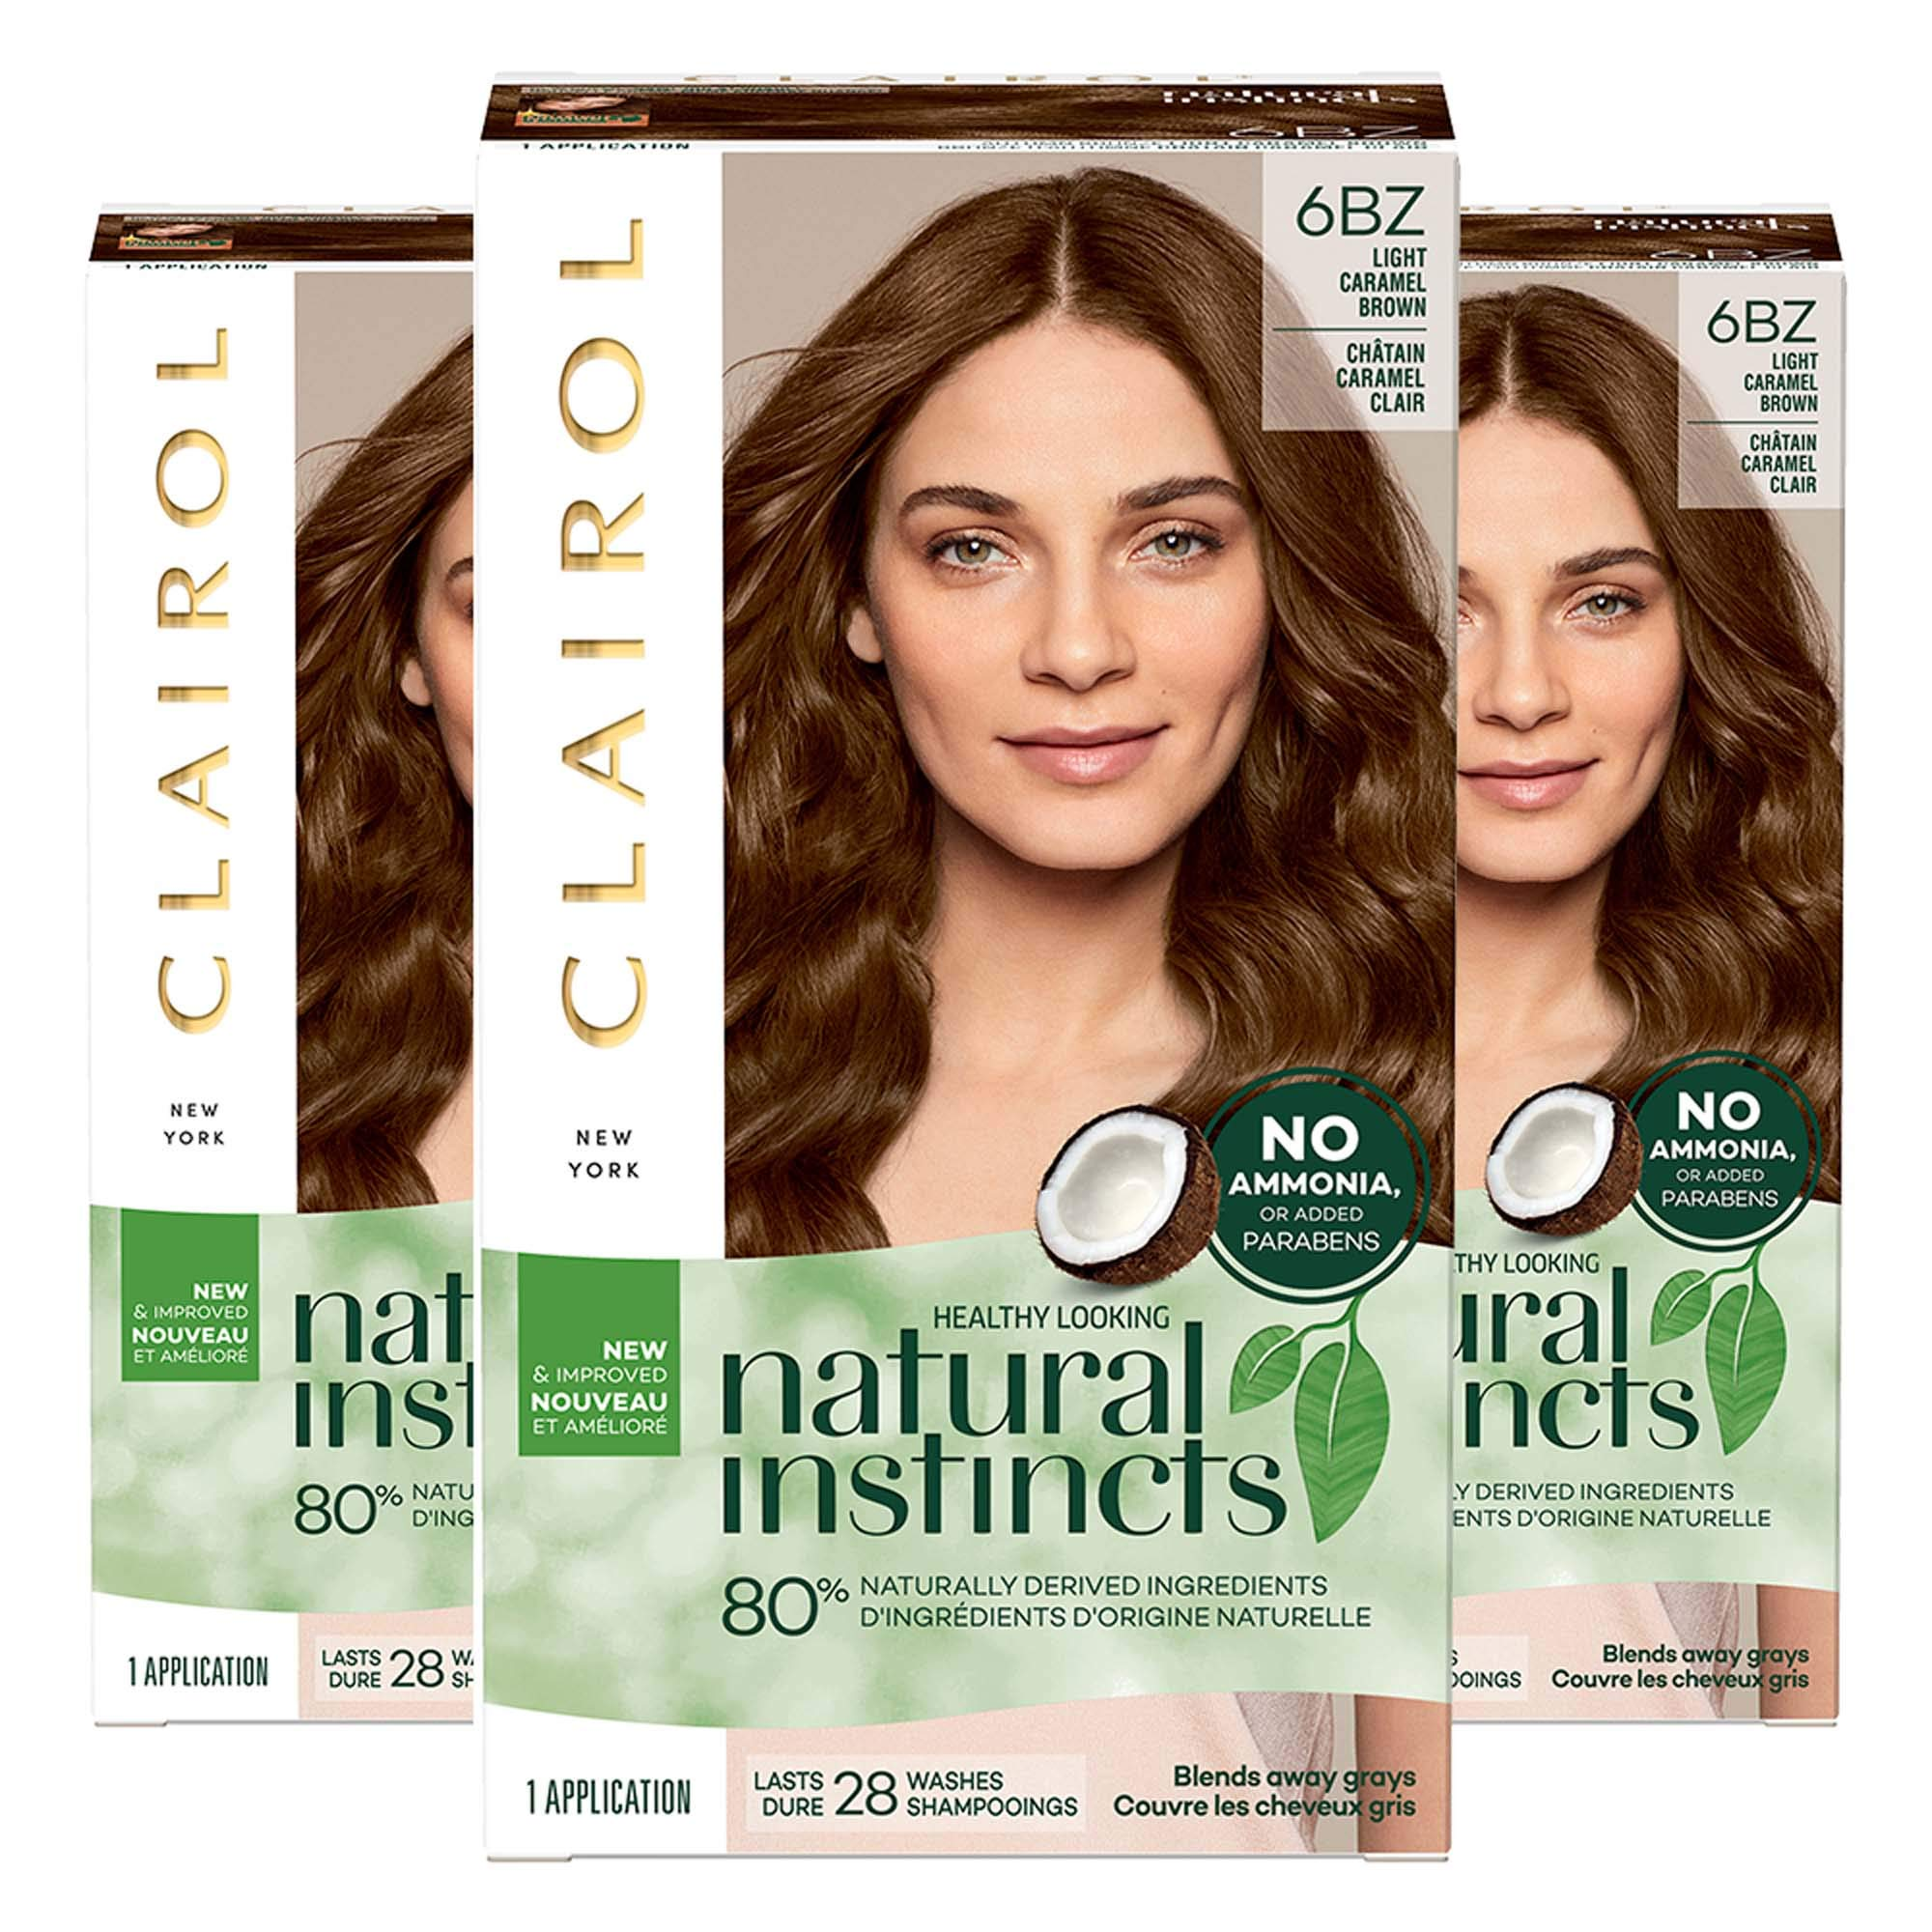 Clairol Natural Instincts Semi-Permanent Hair Color Kit (Pack of 3) 6BZ / 12A Navajo Bronze Light Caramel Brown, Ammonia Free, Long Lasting by Clairol